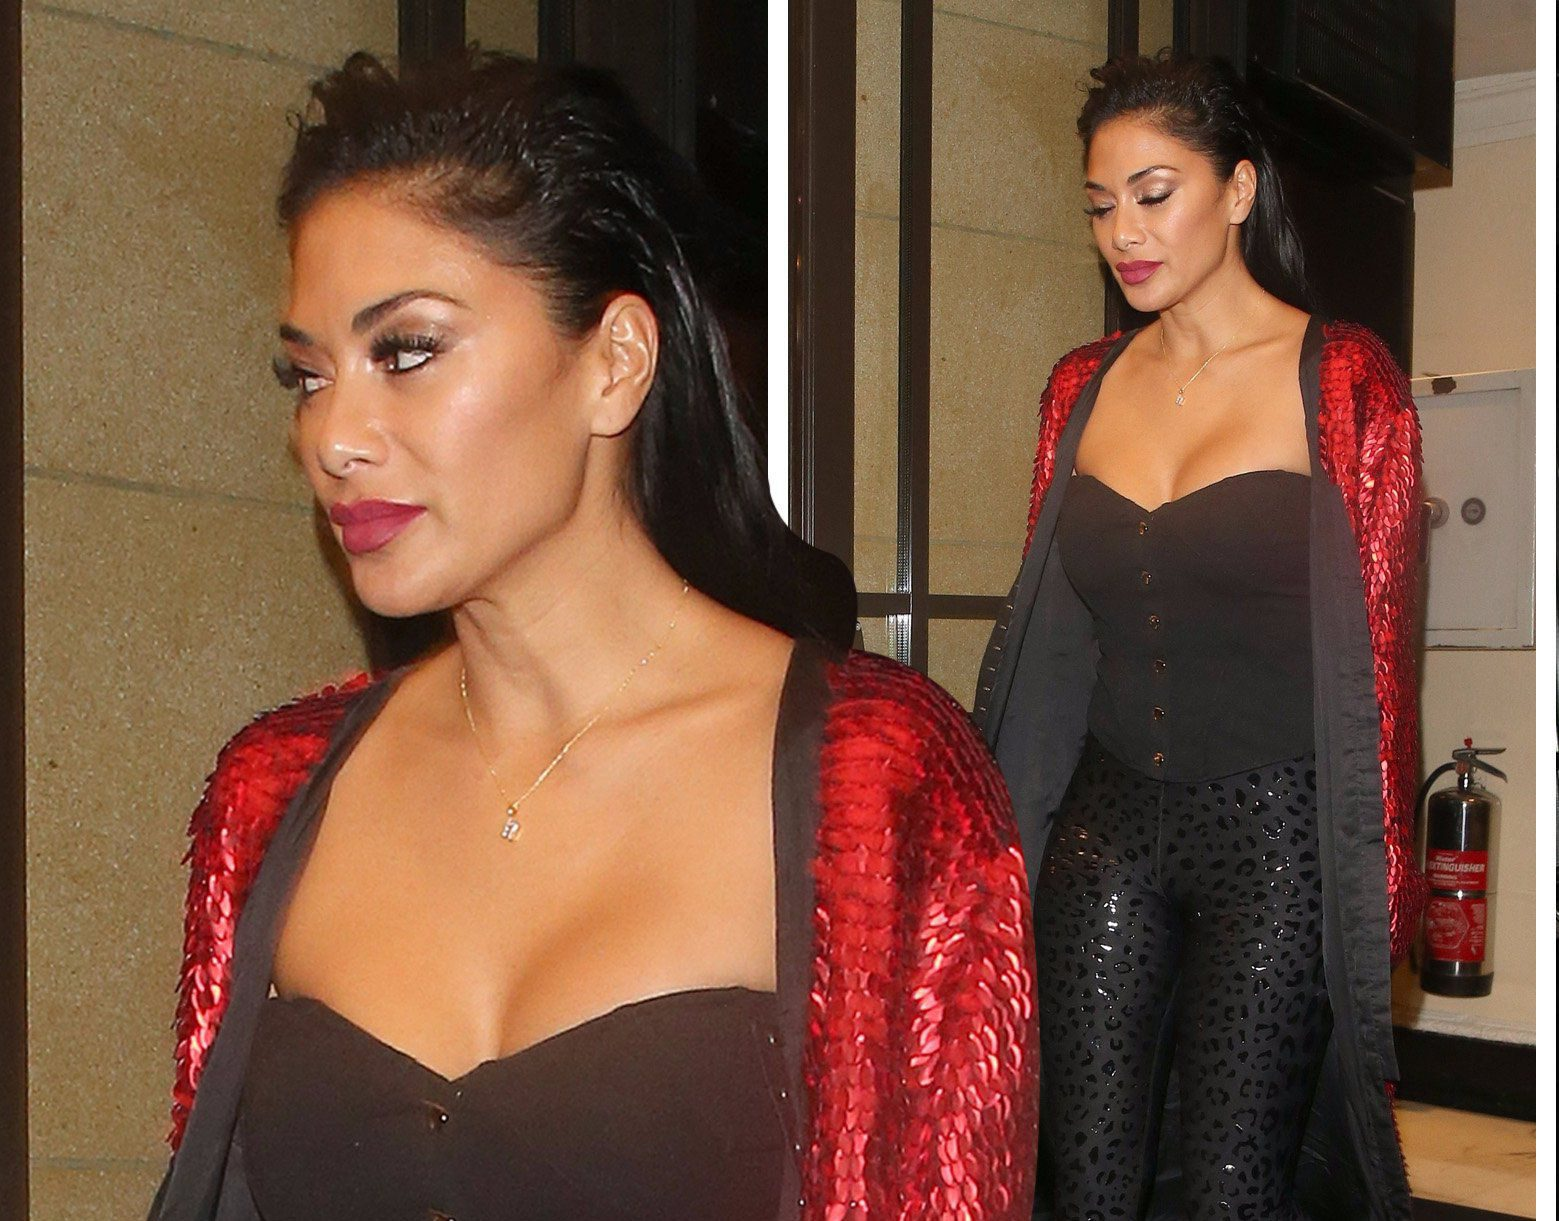 Nicole Scherzinger ditches the 'sea urchin' style for festive fun at X Factor after party